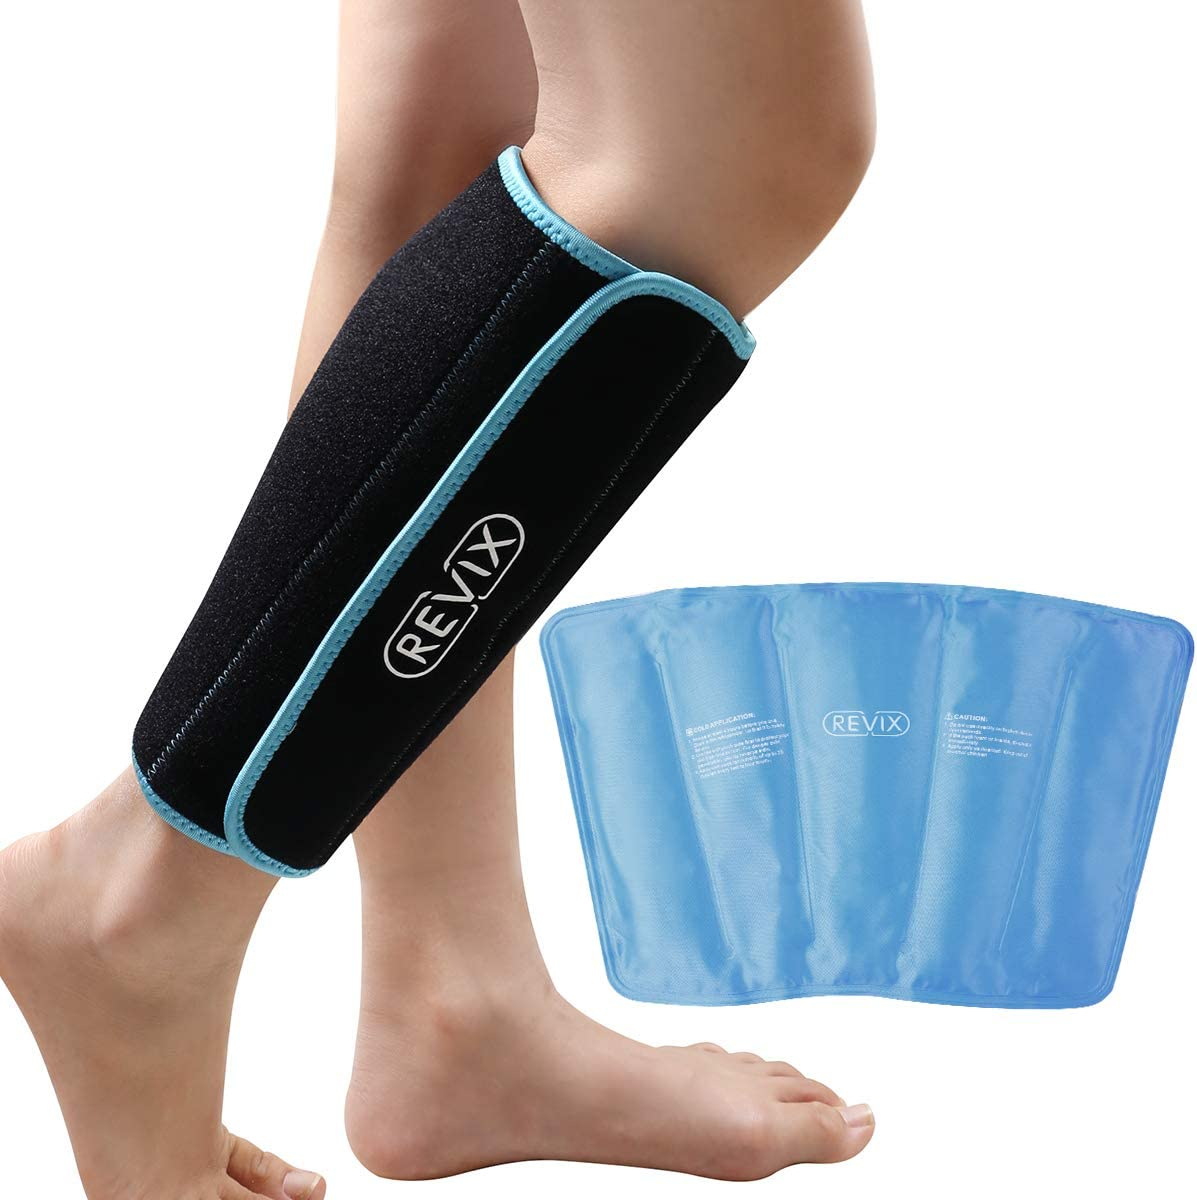 REVIX Calf and Shin Gel Ice Packs for Injuries Reusable Leg Cold Pack Wrap Cold Therapy Compression Sleeve for Swelling, Bruises, and Sprains, Shin Splints Leg Pain Relief Support: Health & Personal Care